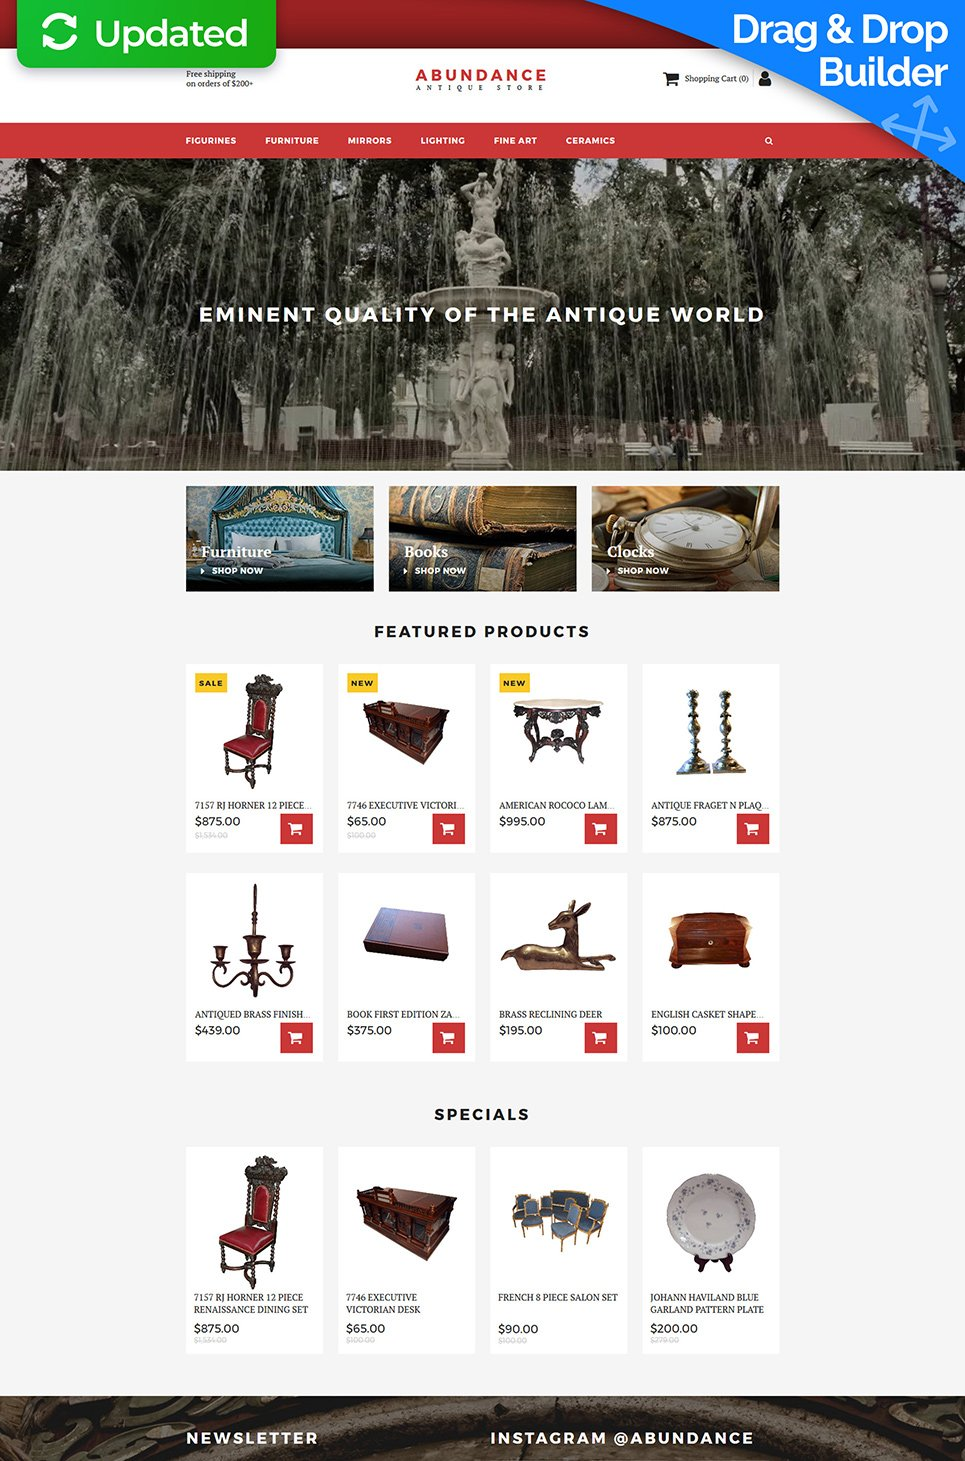 Abundance Ecommerce Website Template - image